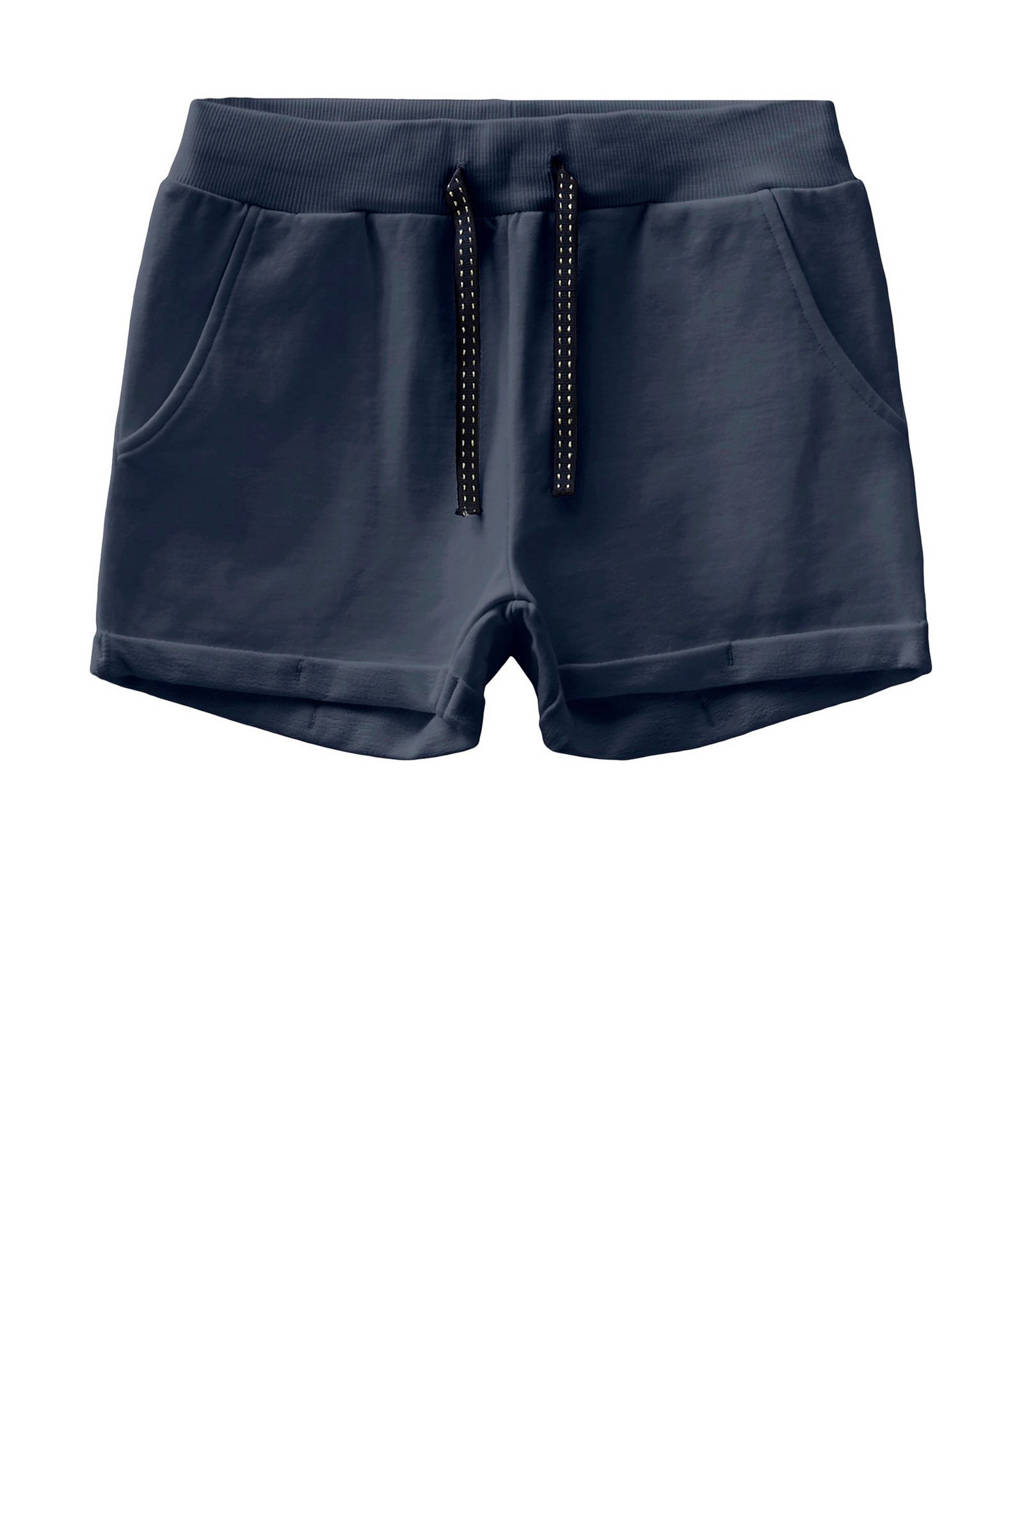 NAME IT KIDS high waist sweatshort Volta donkerblauw, Donkerblauw